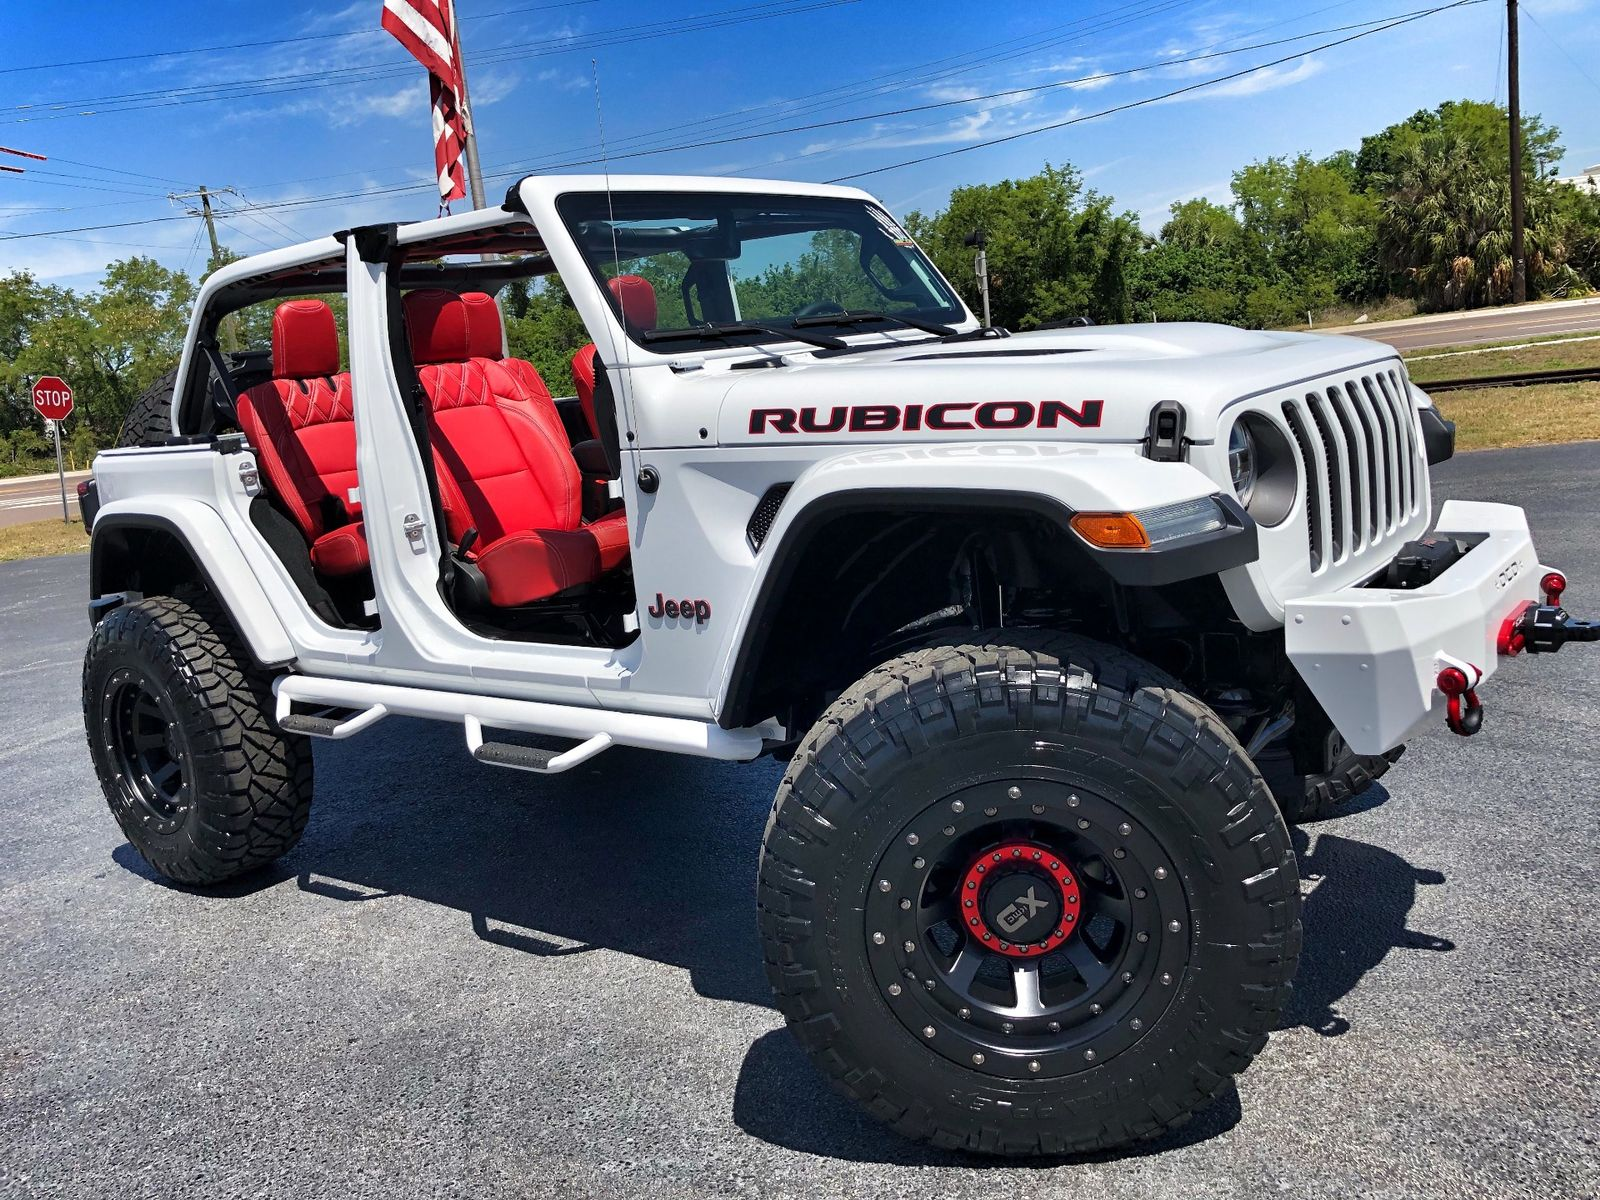 2018 jeep all new wrangler unlimited rubicon jl custom. Black Bedroom Furniture Sets. Home Design Ideas